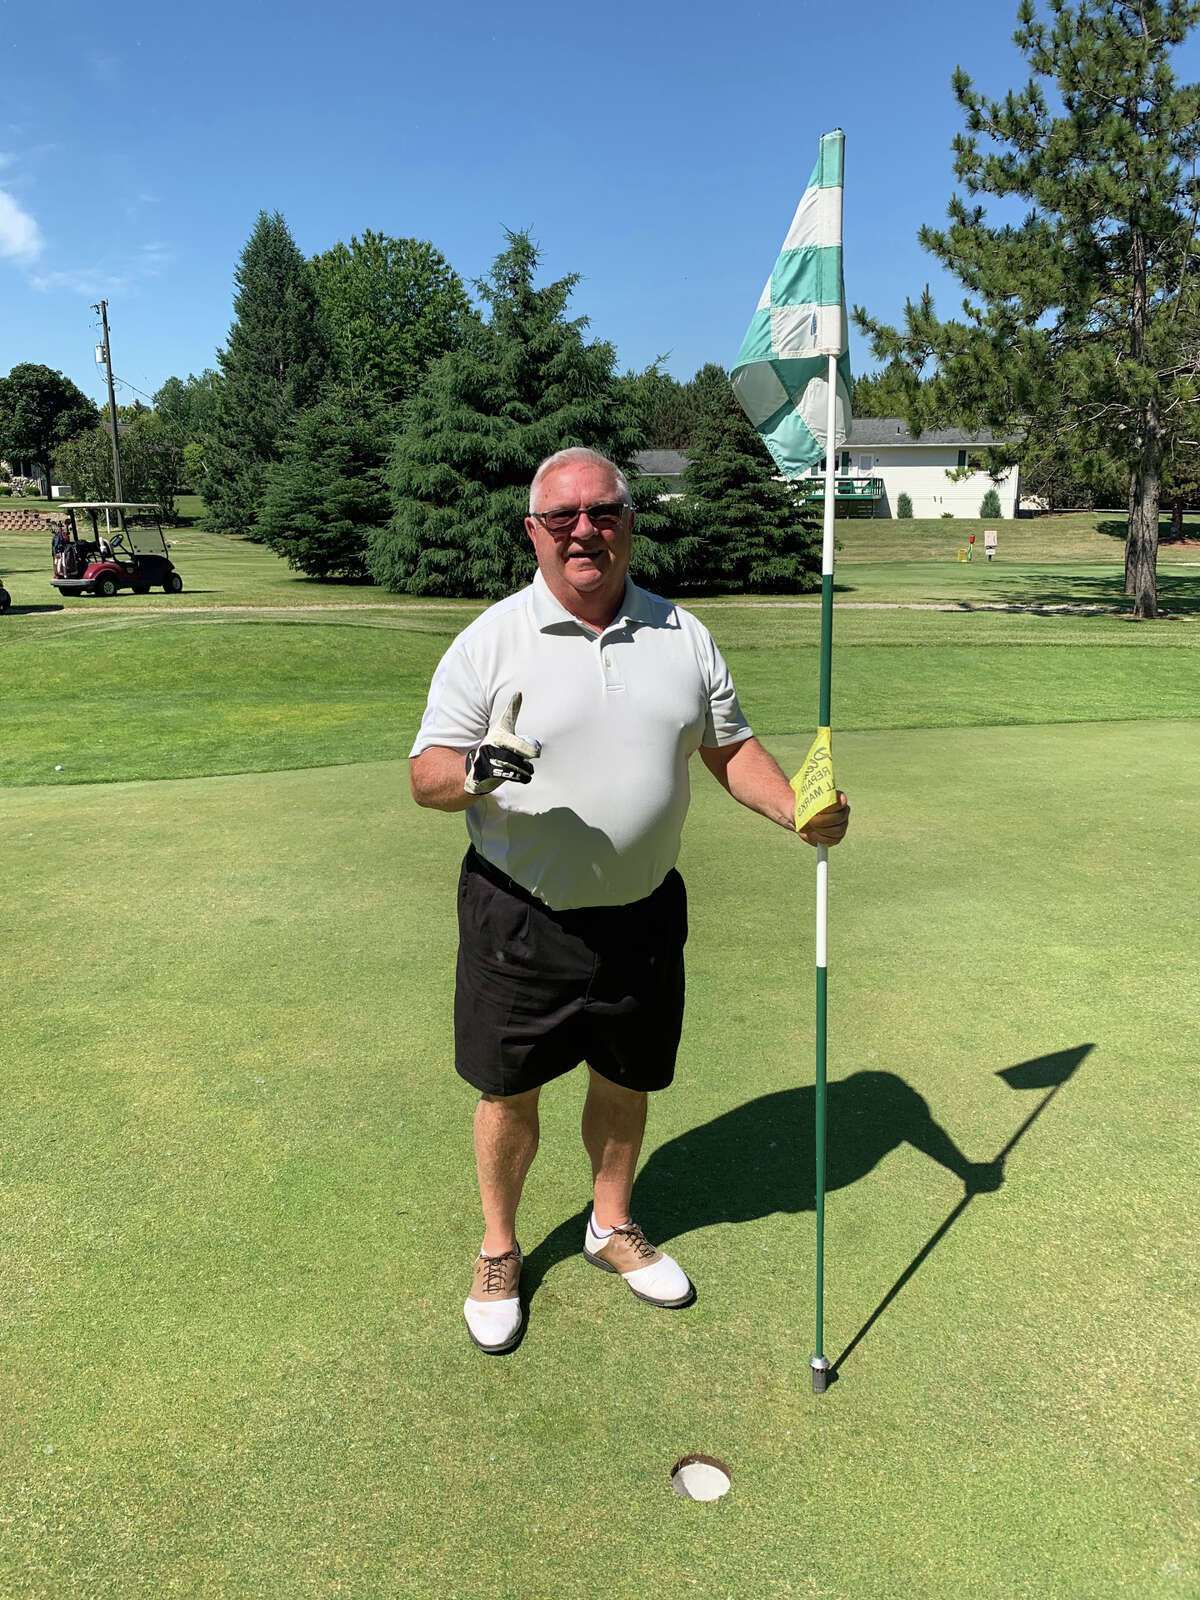 Kent Tibbits, of Pigeon, recorded an ace on the No. 7 hole at Century Oaks Golf Course on Thursday.